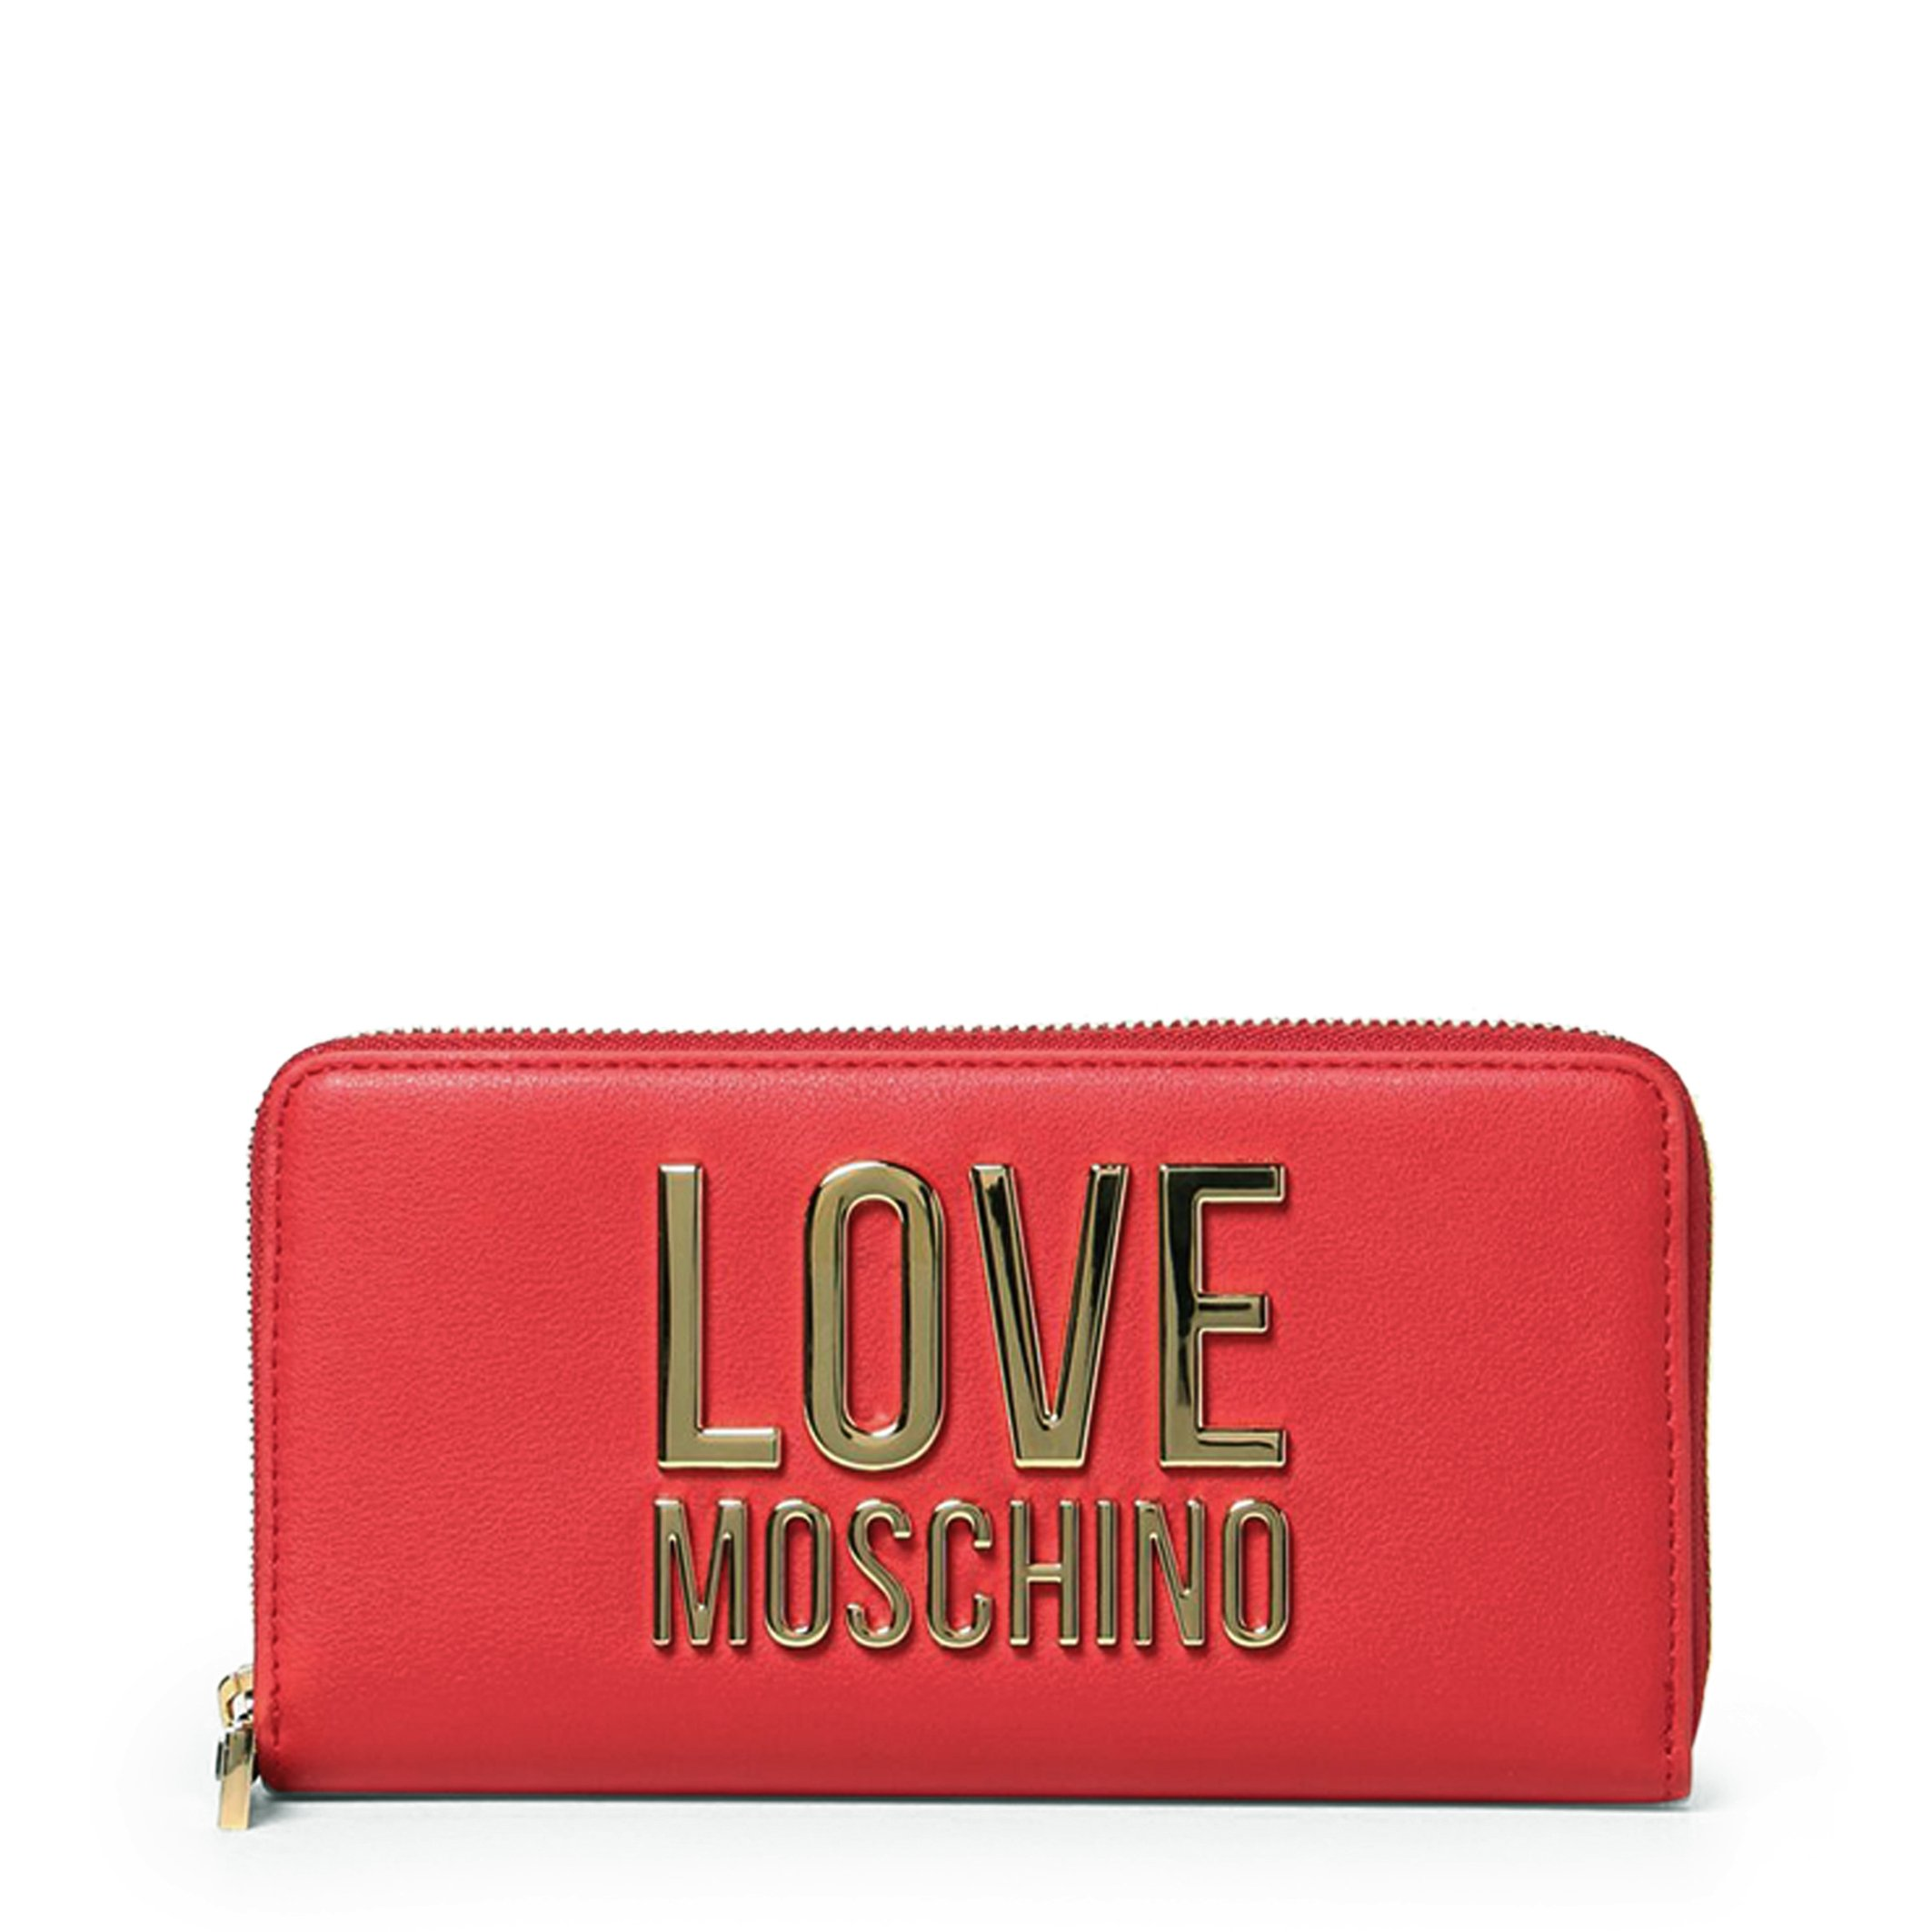 Love Moschino Women's Wallet Various Colours JC5611PP1DLJ0 - red NOSIZE